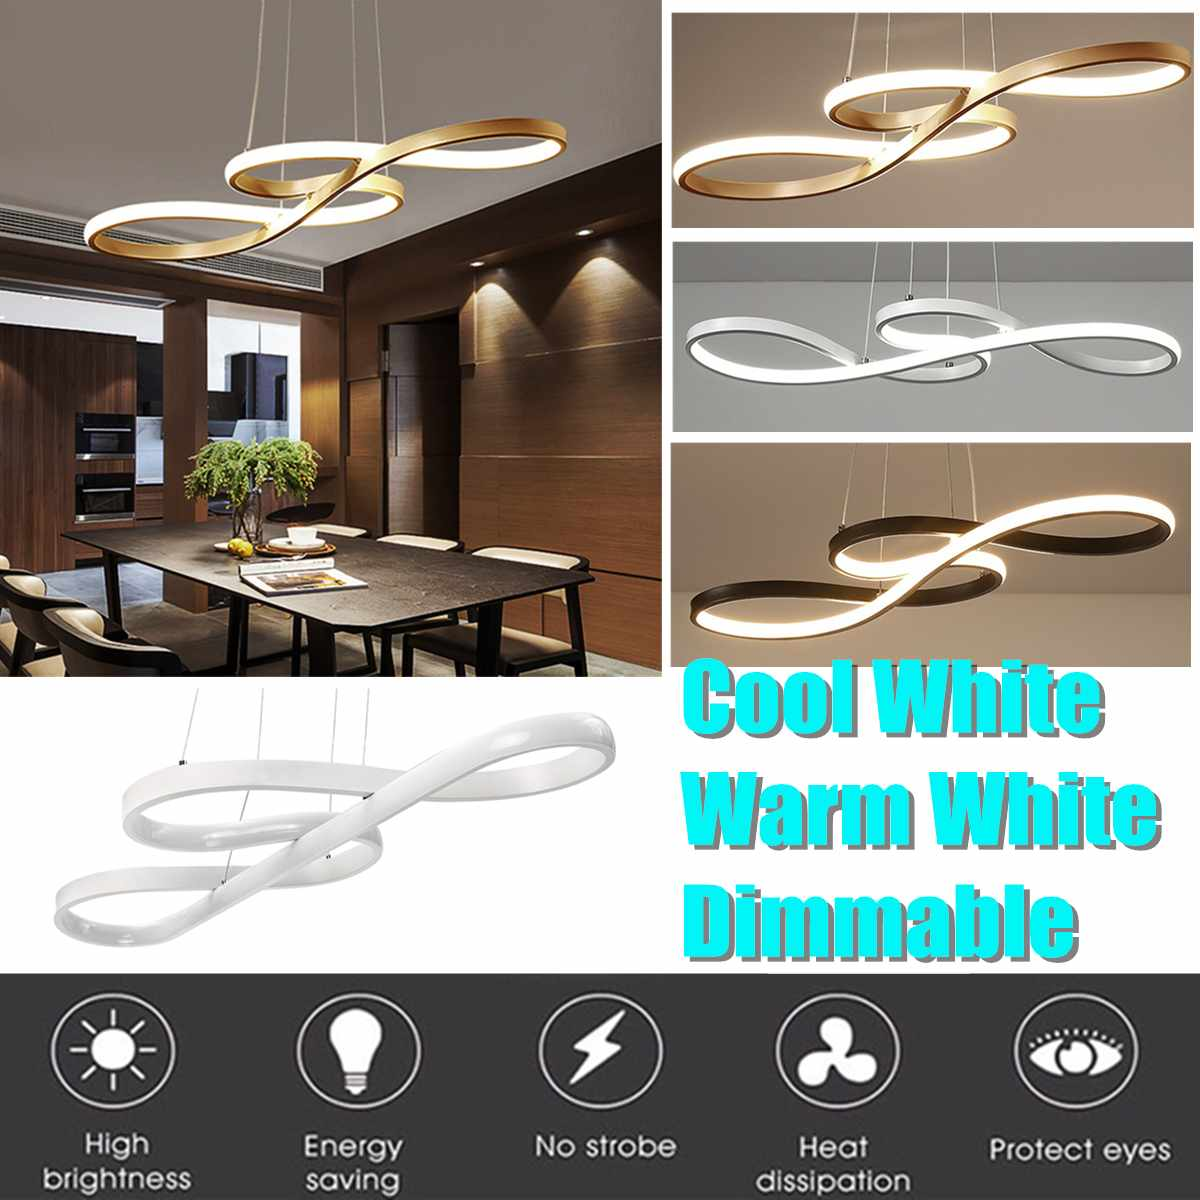 Nordic Modern Acrylic LED Ceiling Light Pendant Lamp Hallway Bedroom Dimmable Fixtures Living Dining Room Restaurant Decoration